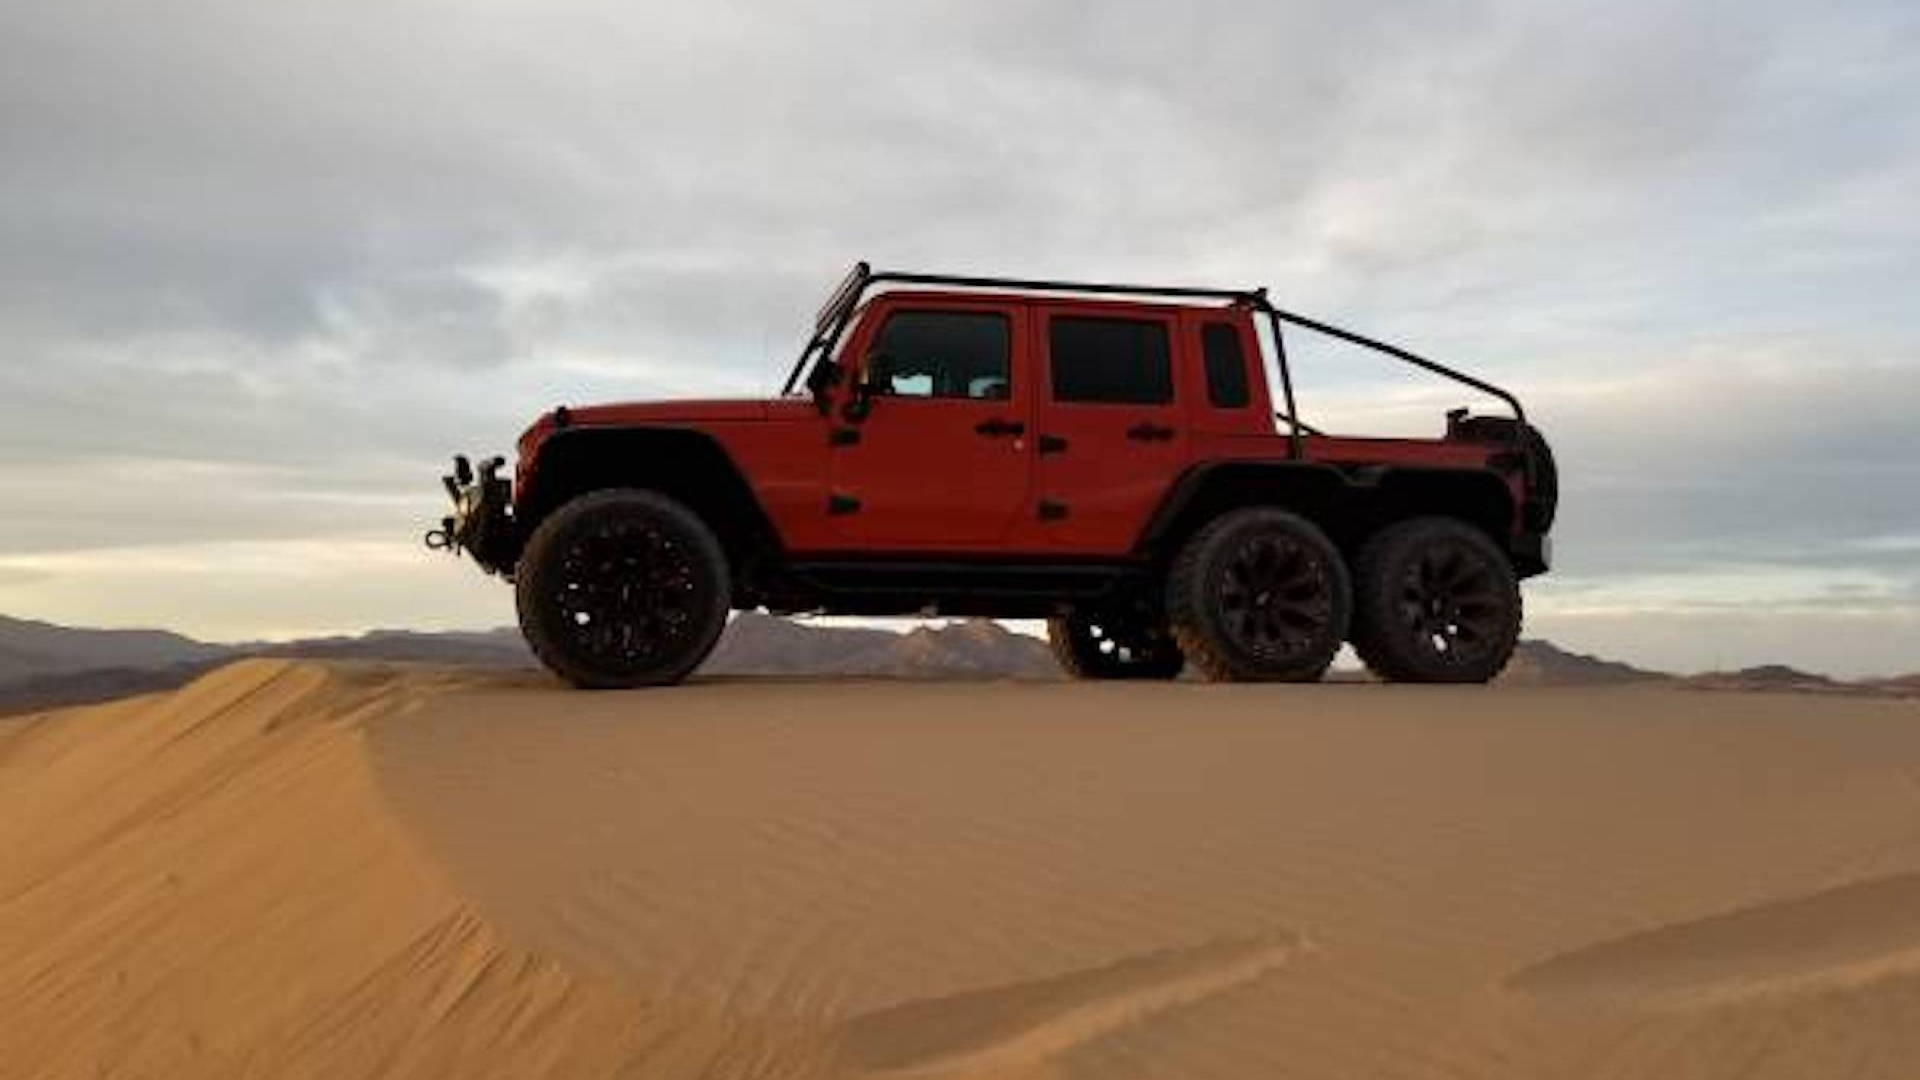 Jeep Wrangler 6x6 with Hellcat V-8 by Exotic Custom Motorsports